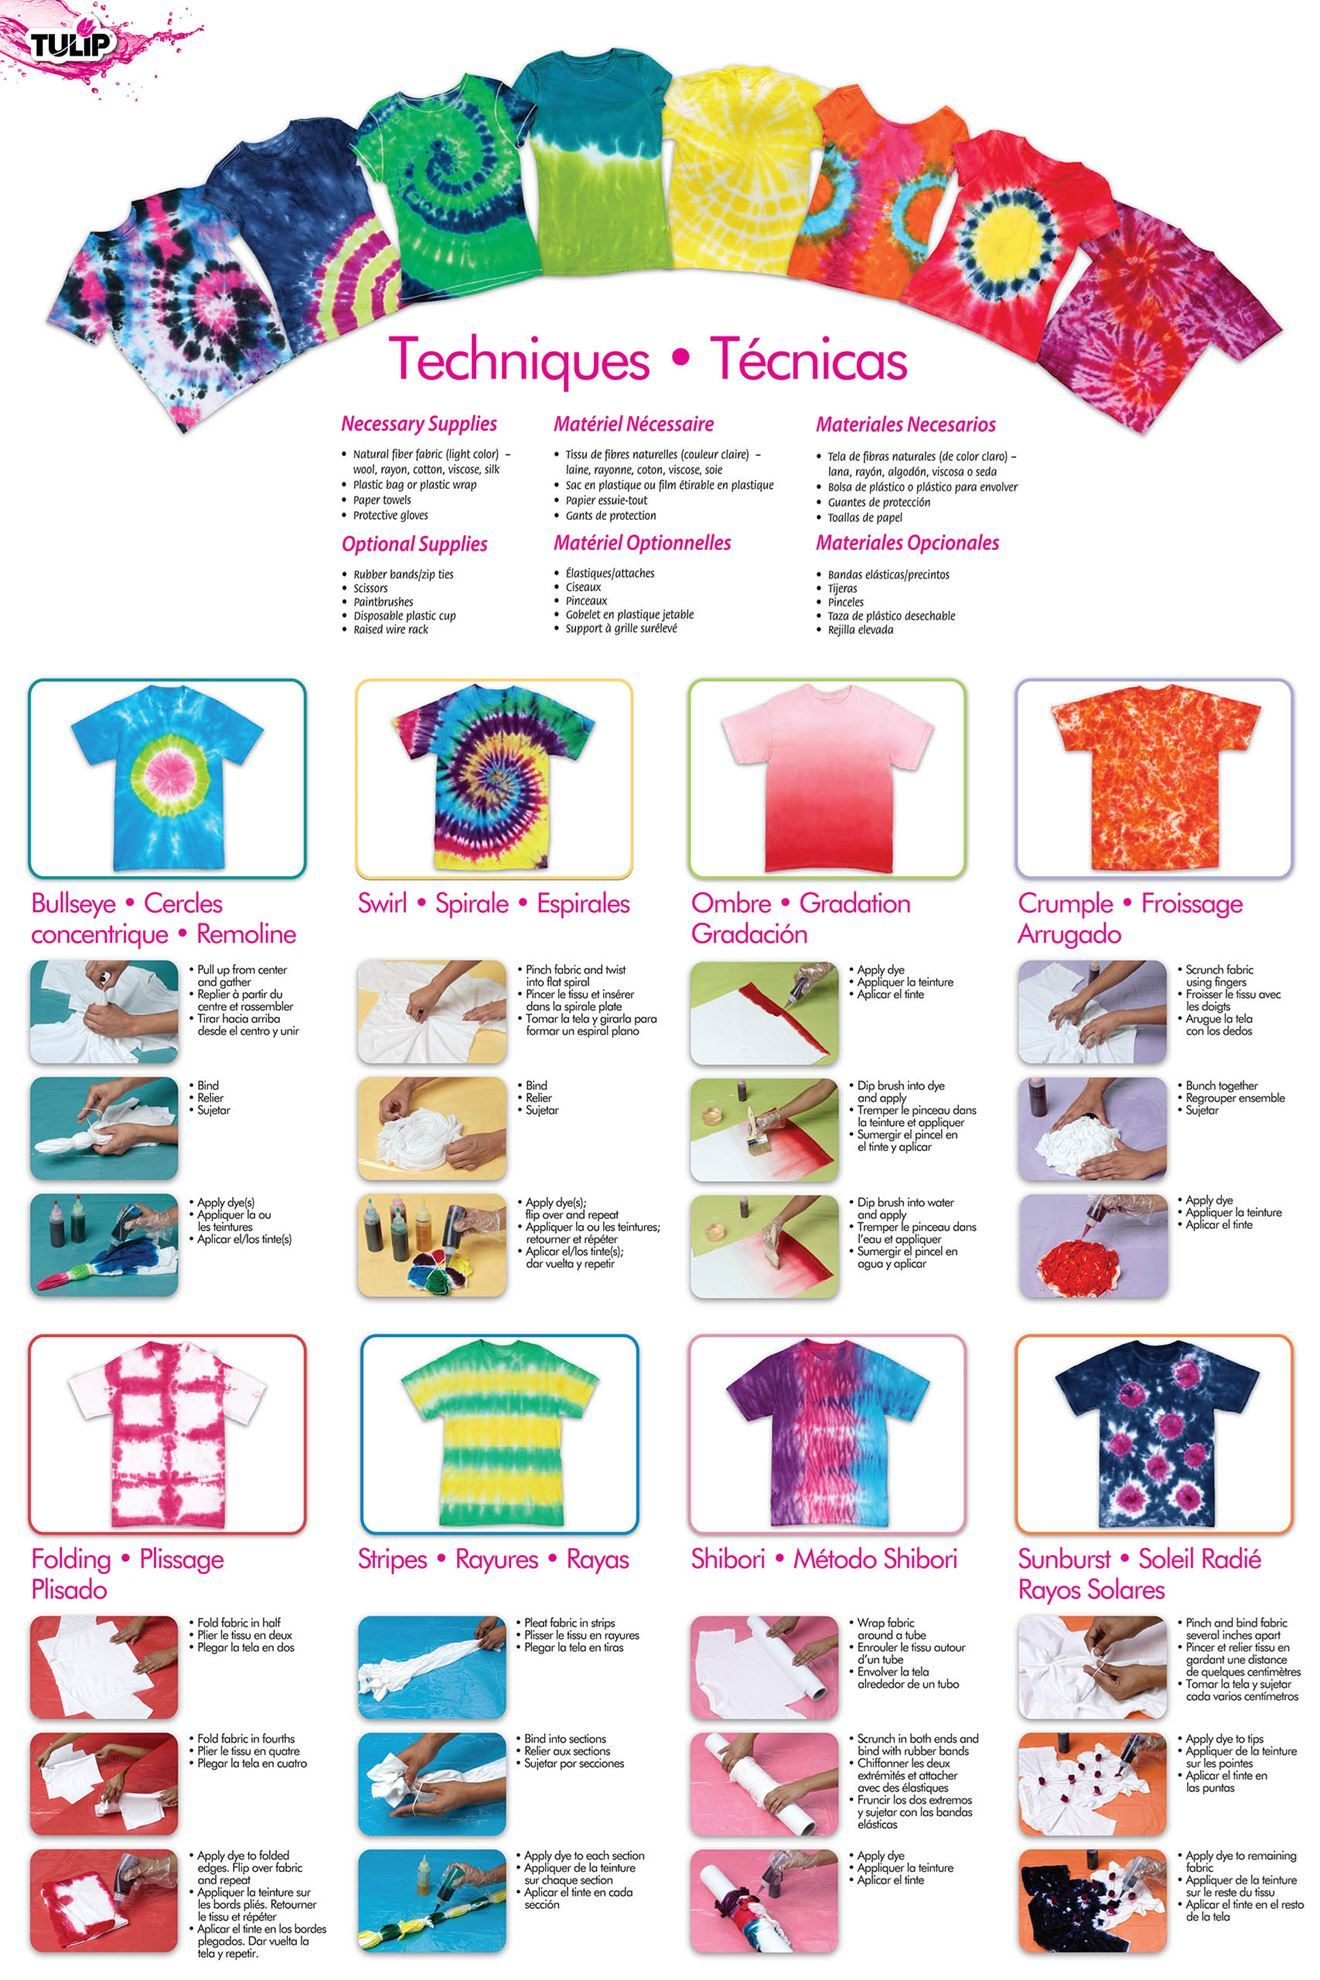 Carousel 5-Color Tie-Dye Instructions